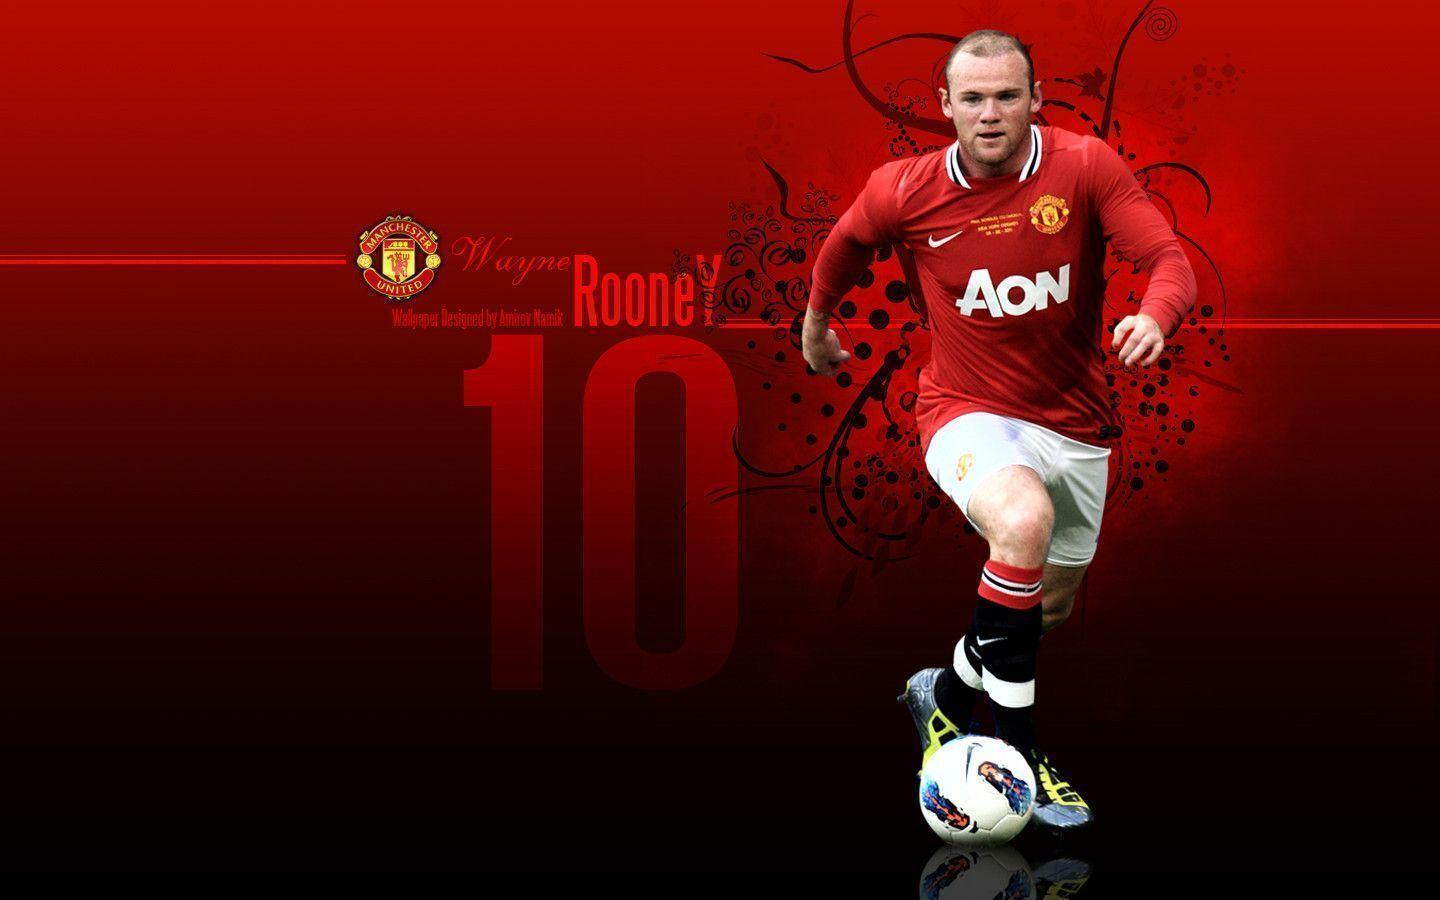 Rooney HD Wallpapers 2015 - Wallpaper Cave